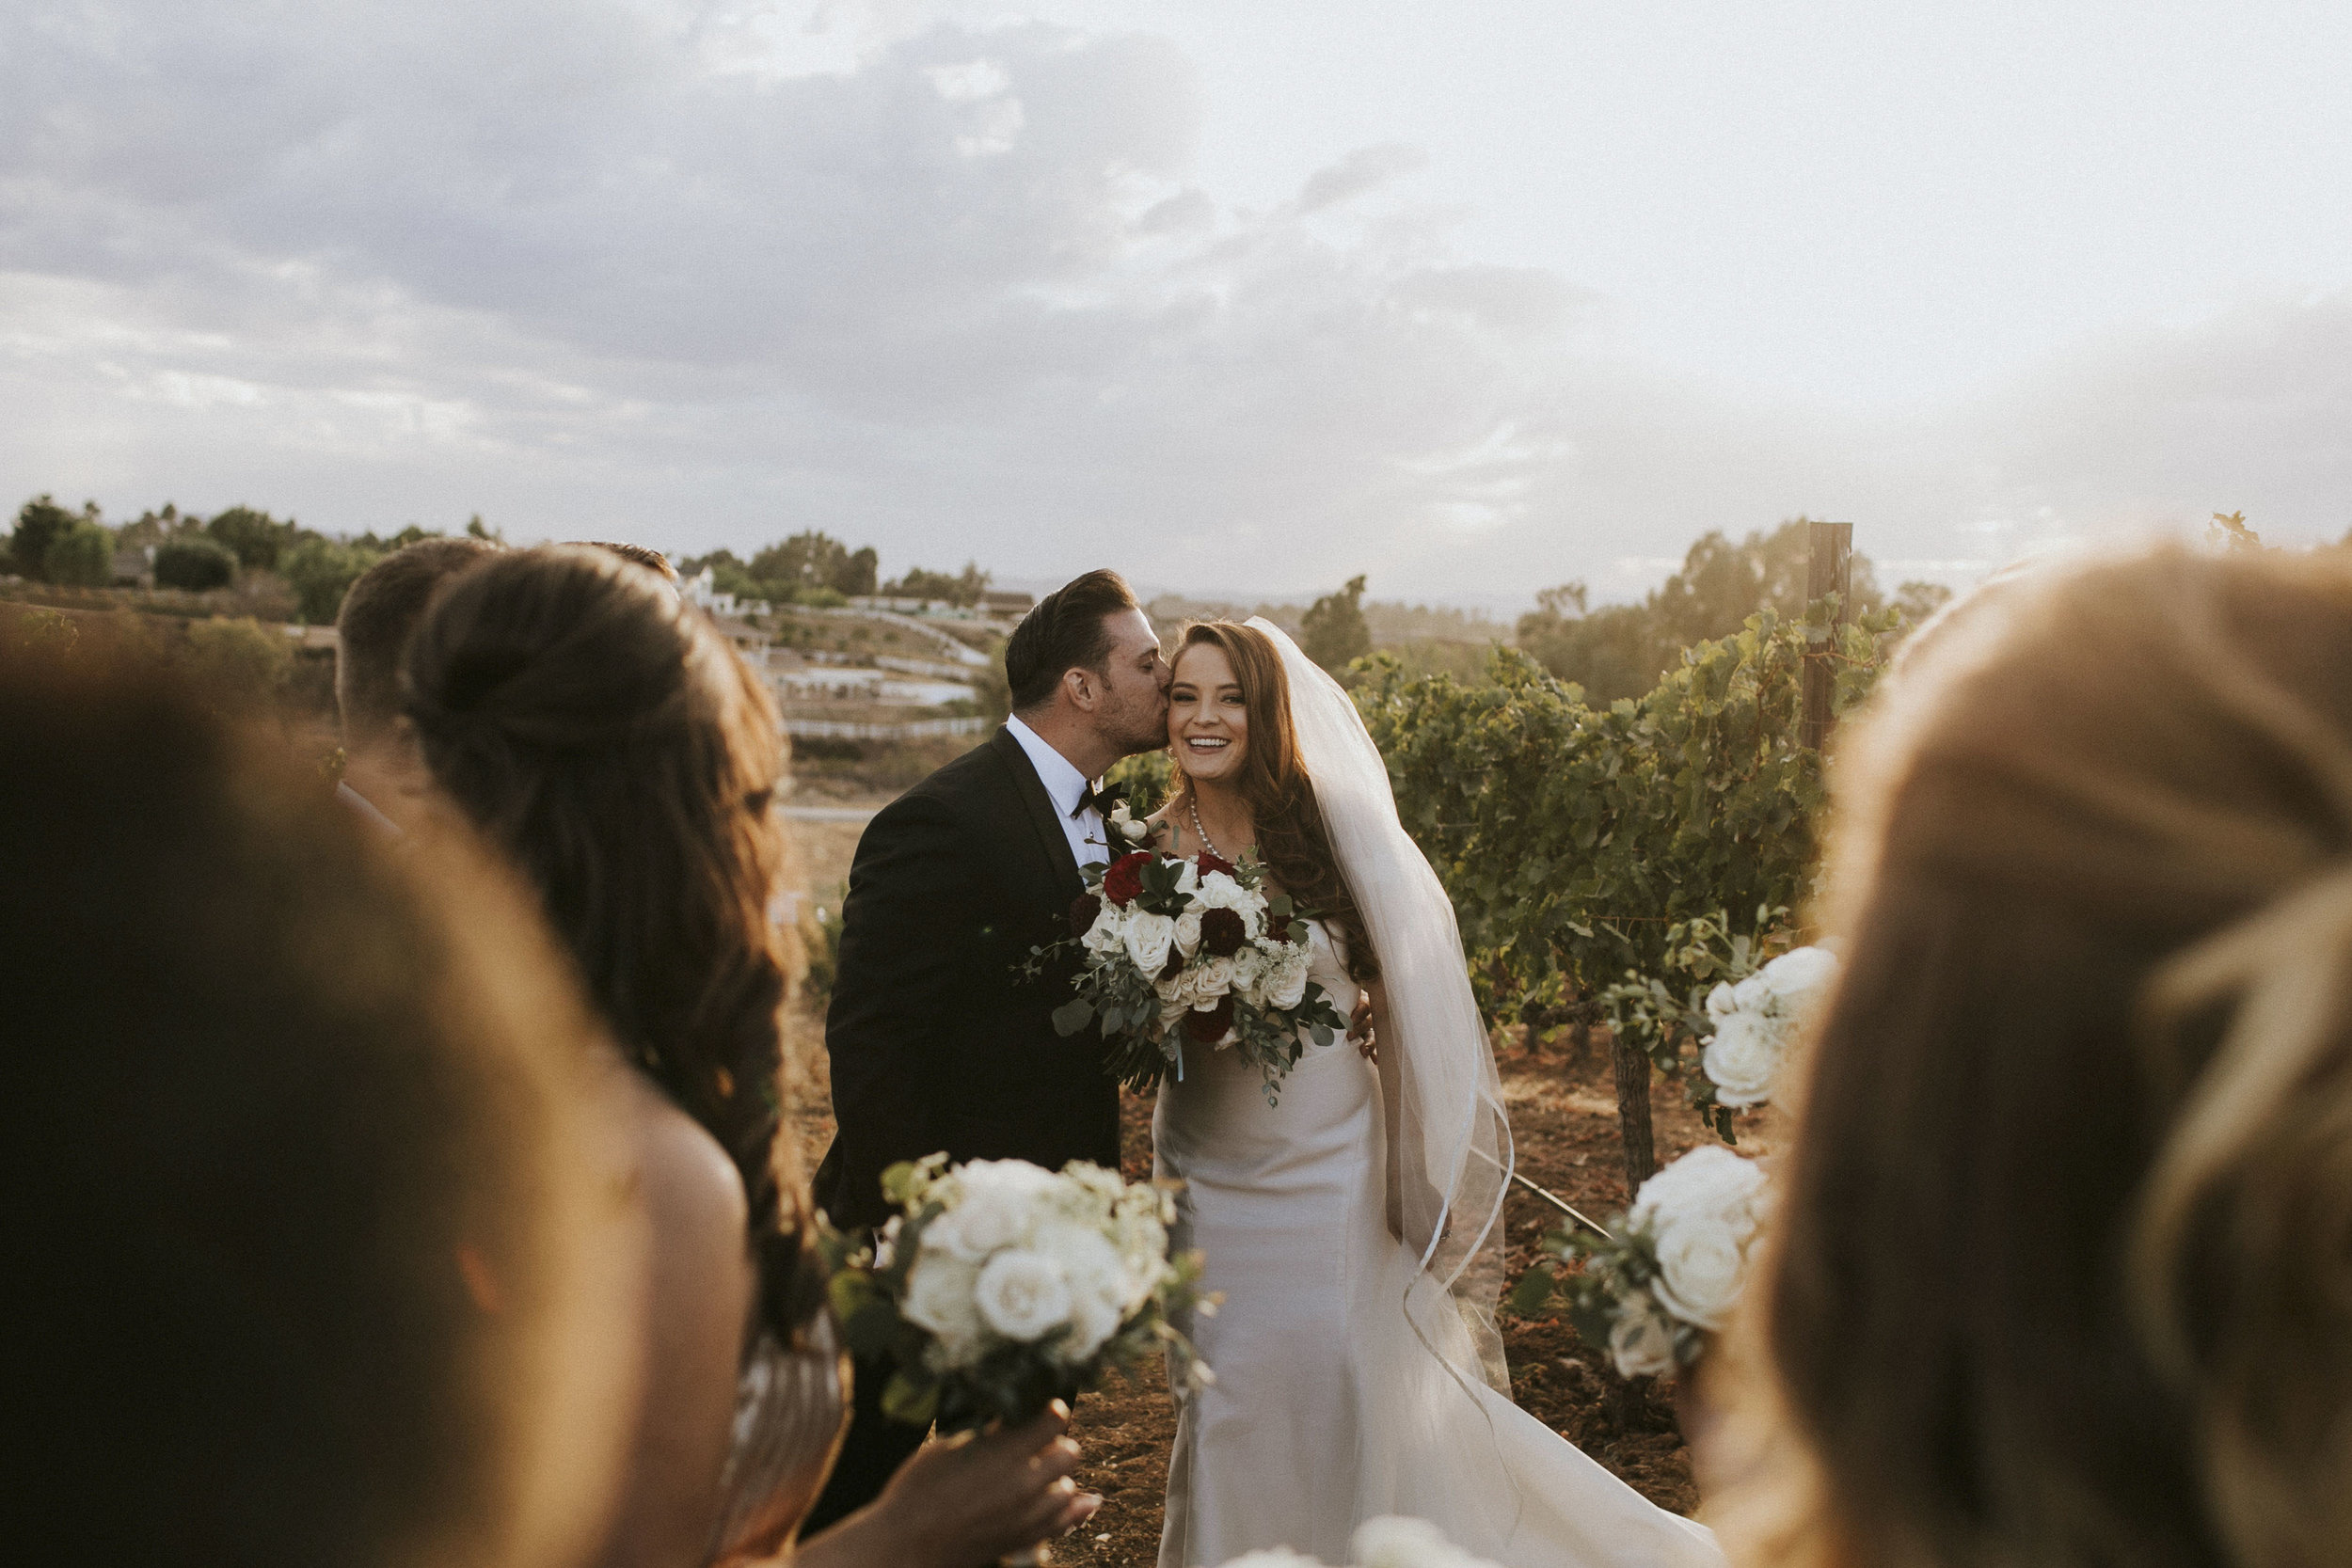 Domenica Beauty _ Hair and Makeup Artist _Wedding _ Temecula, CA _ Catherine and Darryl _ 24.JPG